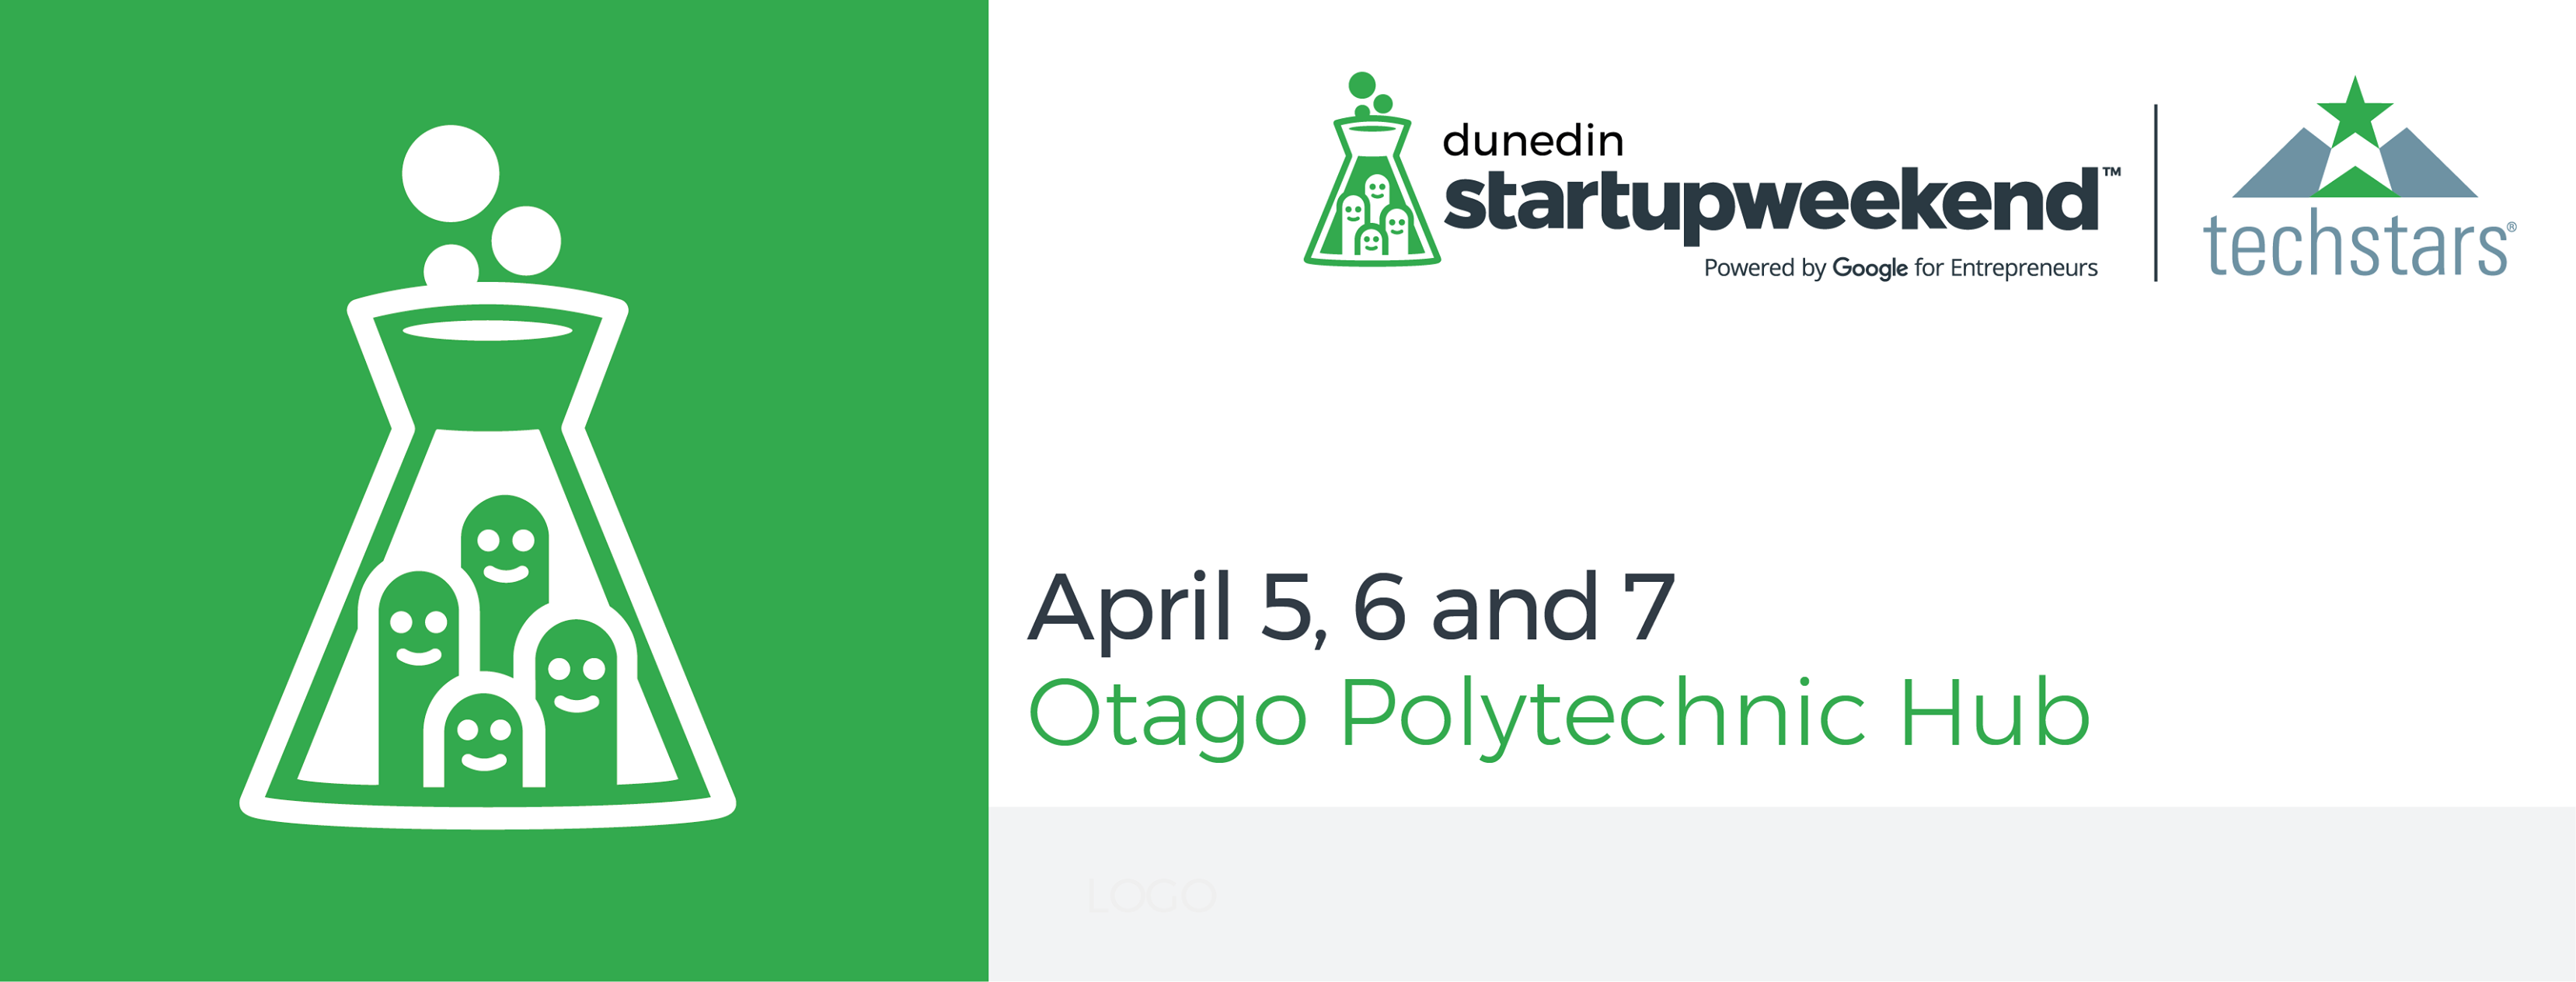 Startup Weekend Cover Image with Details